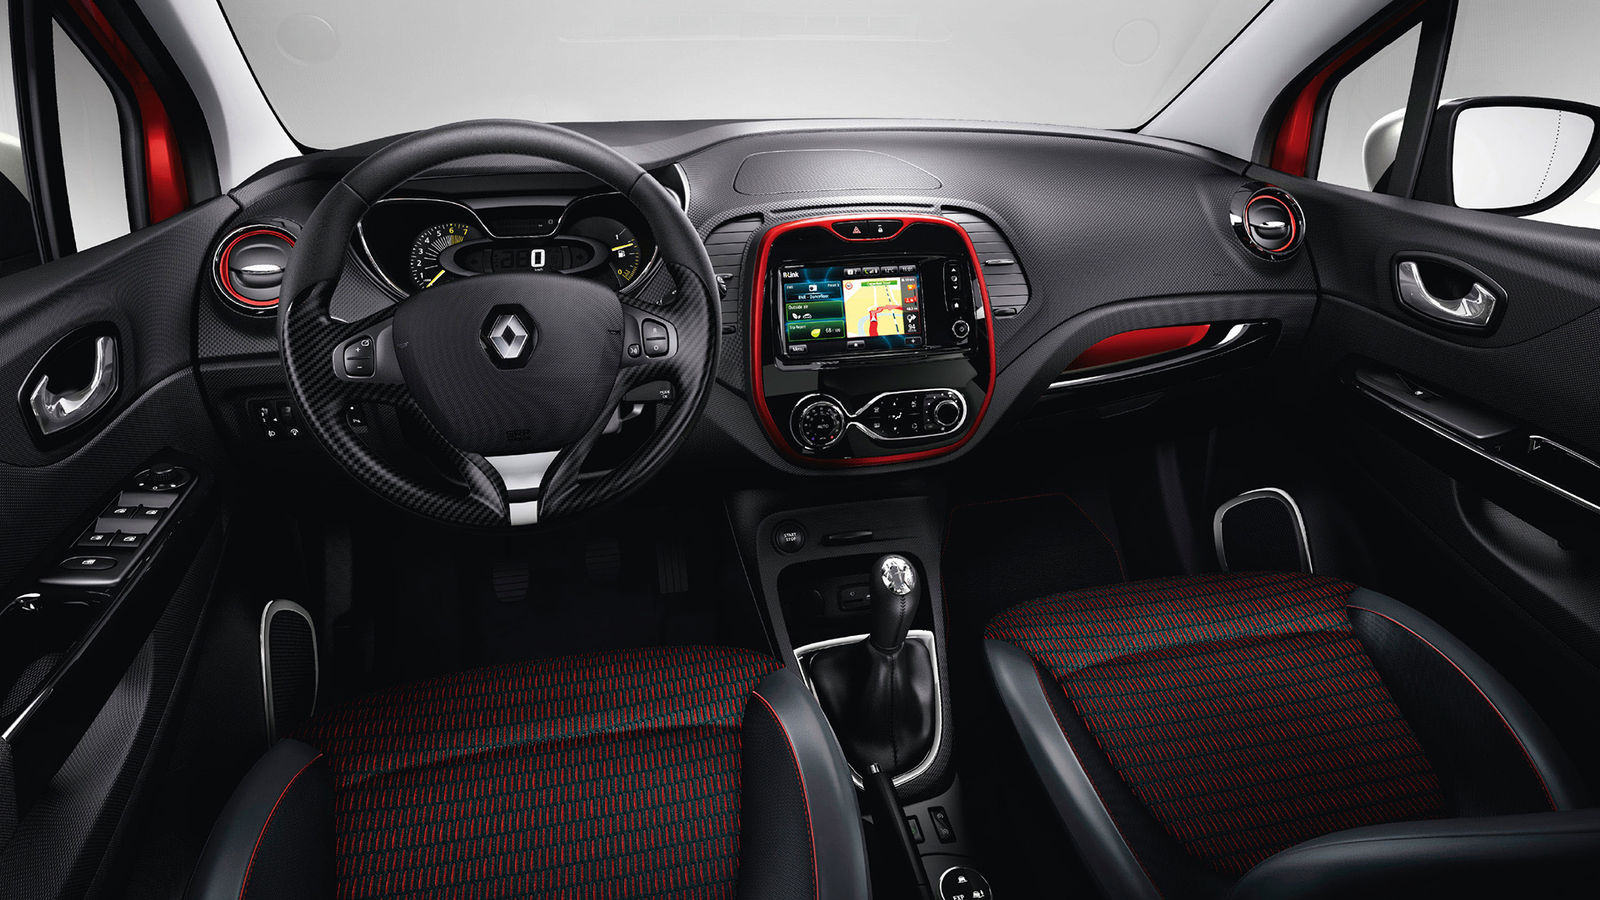 2014 renault captur signature details and specification for Interior renault captur